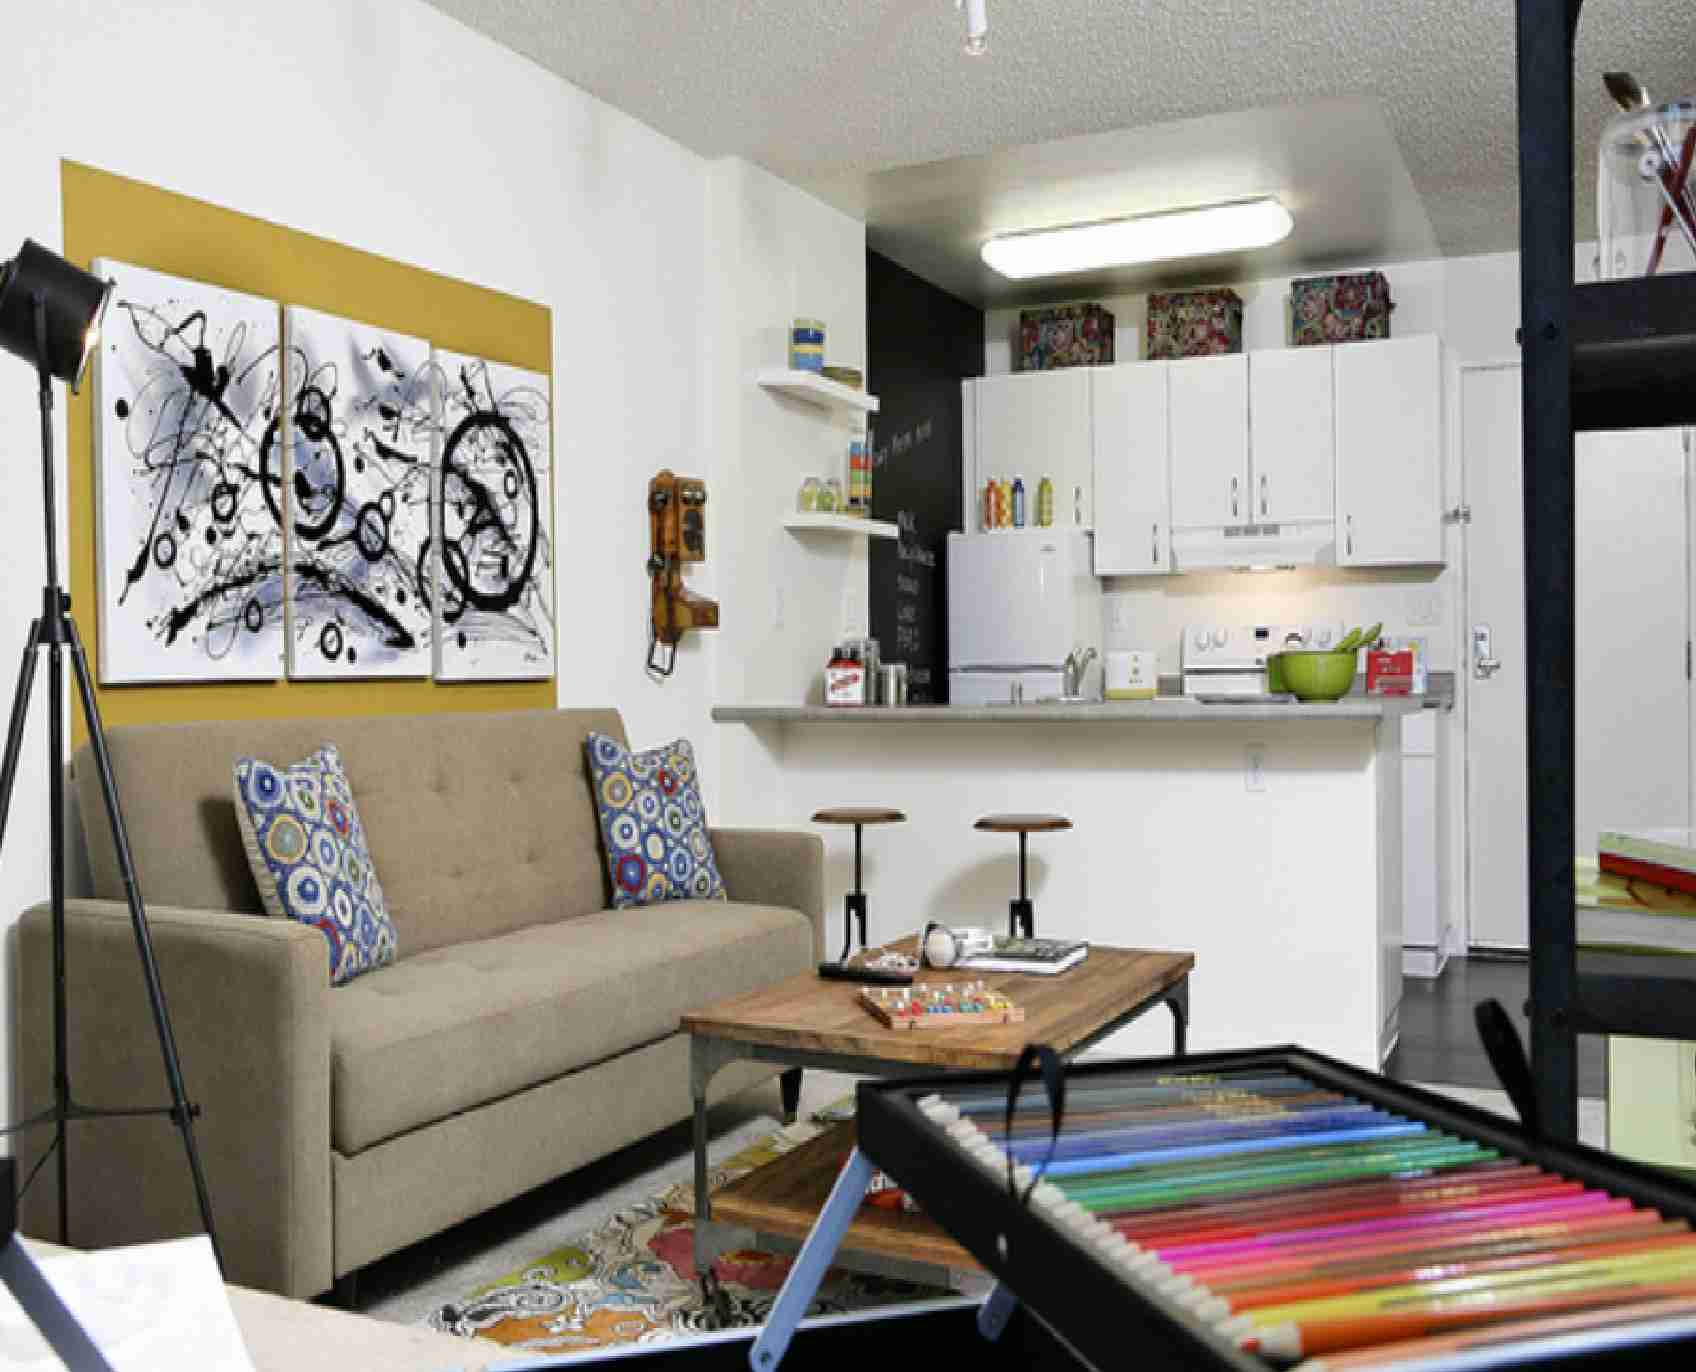 30 Home Decorating Ideas For Small Apartments on Small Living Room Decorating Ideas  id=29325